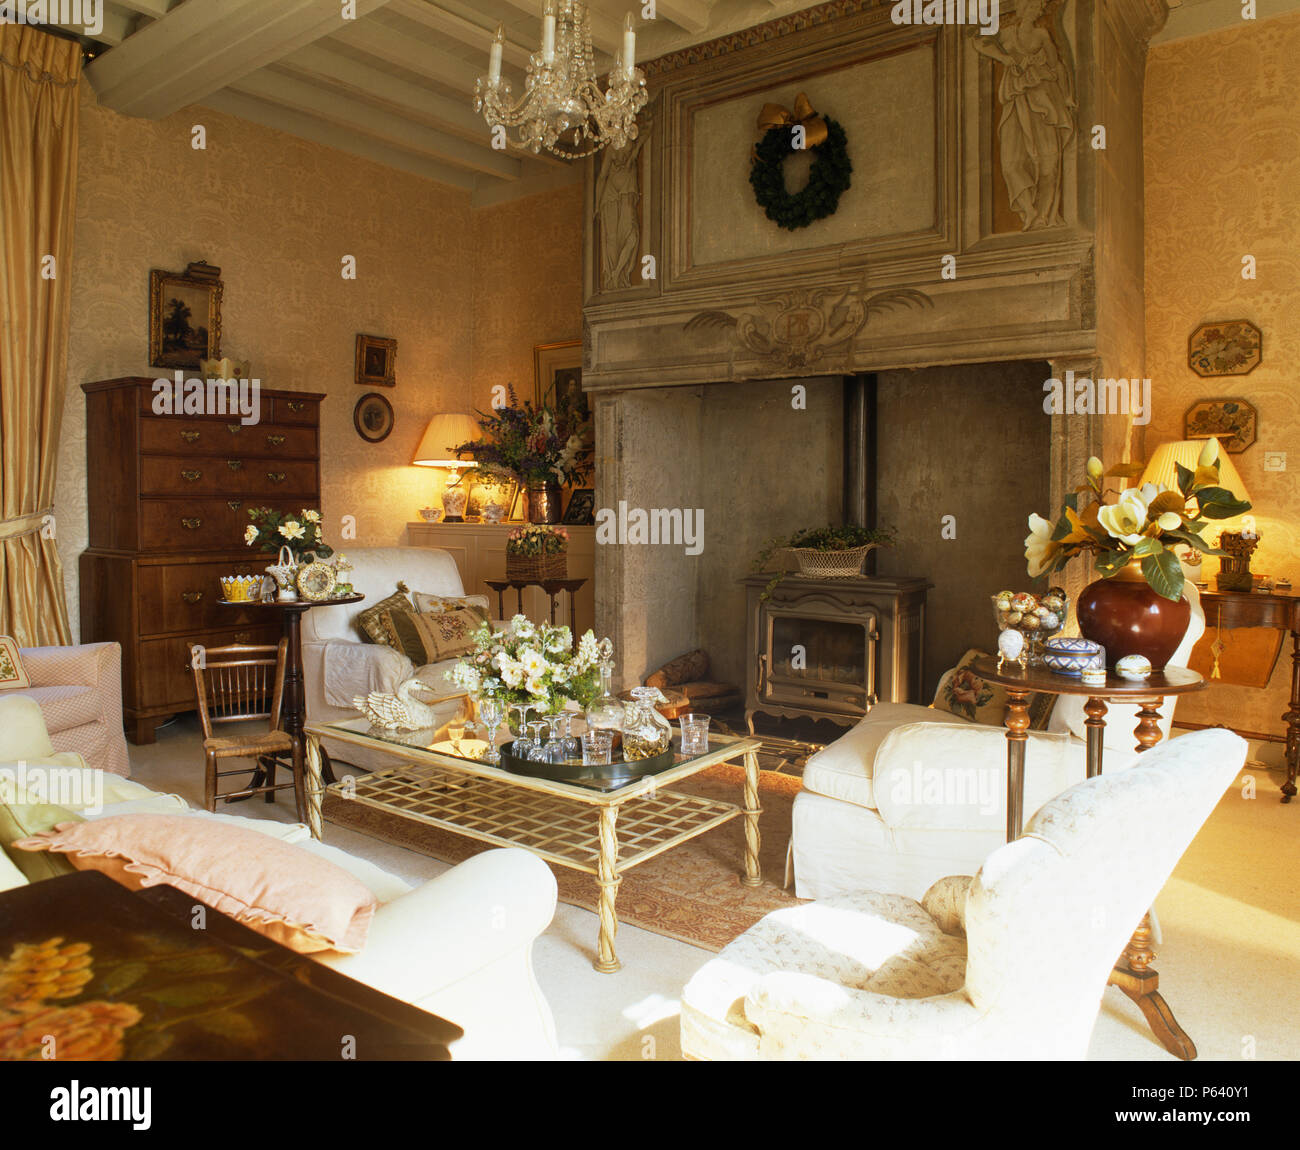 Ornate carved wood fireplace with wood-burning stove in French country sitting room with white sofas and antique furniture - Stock Image